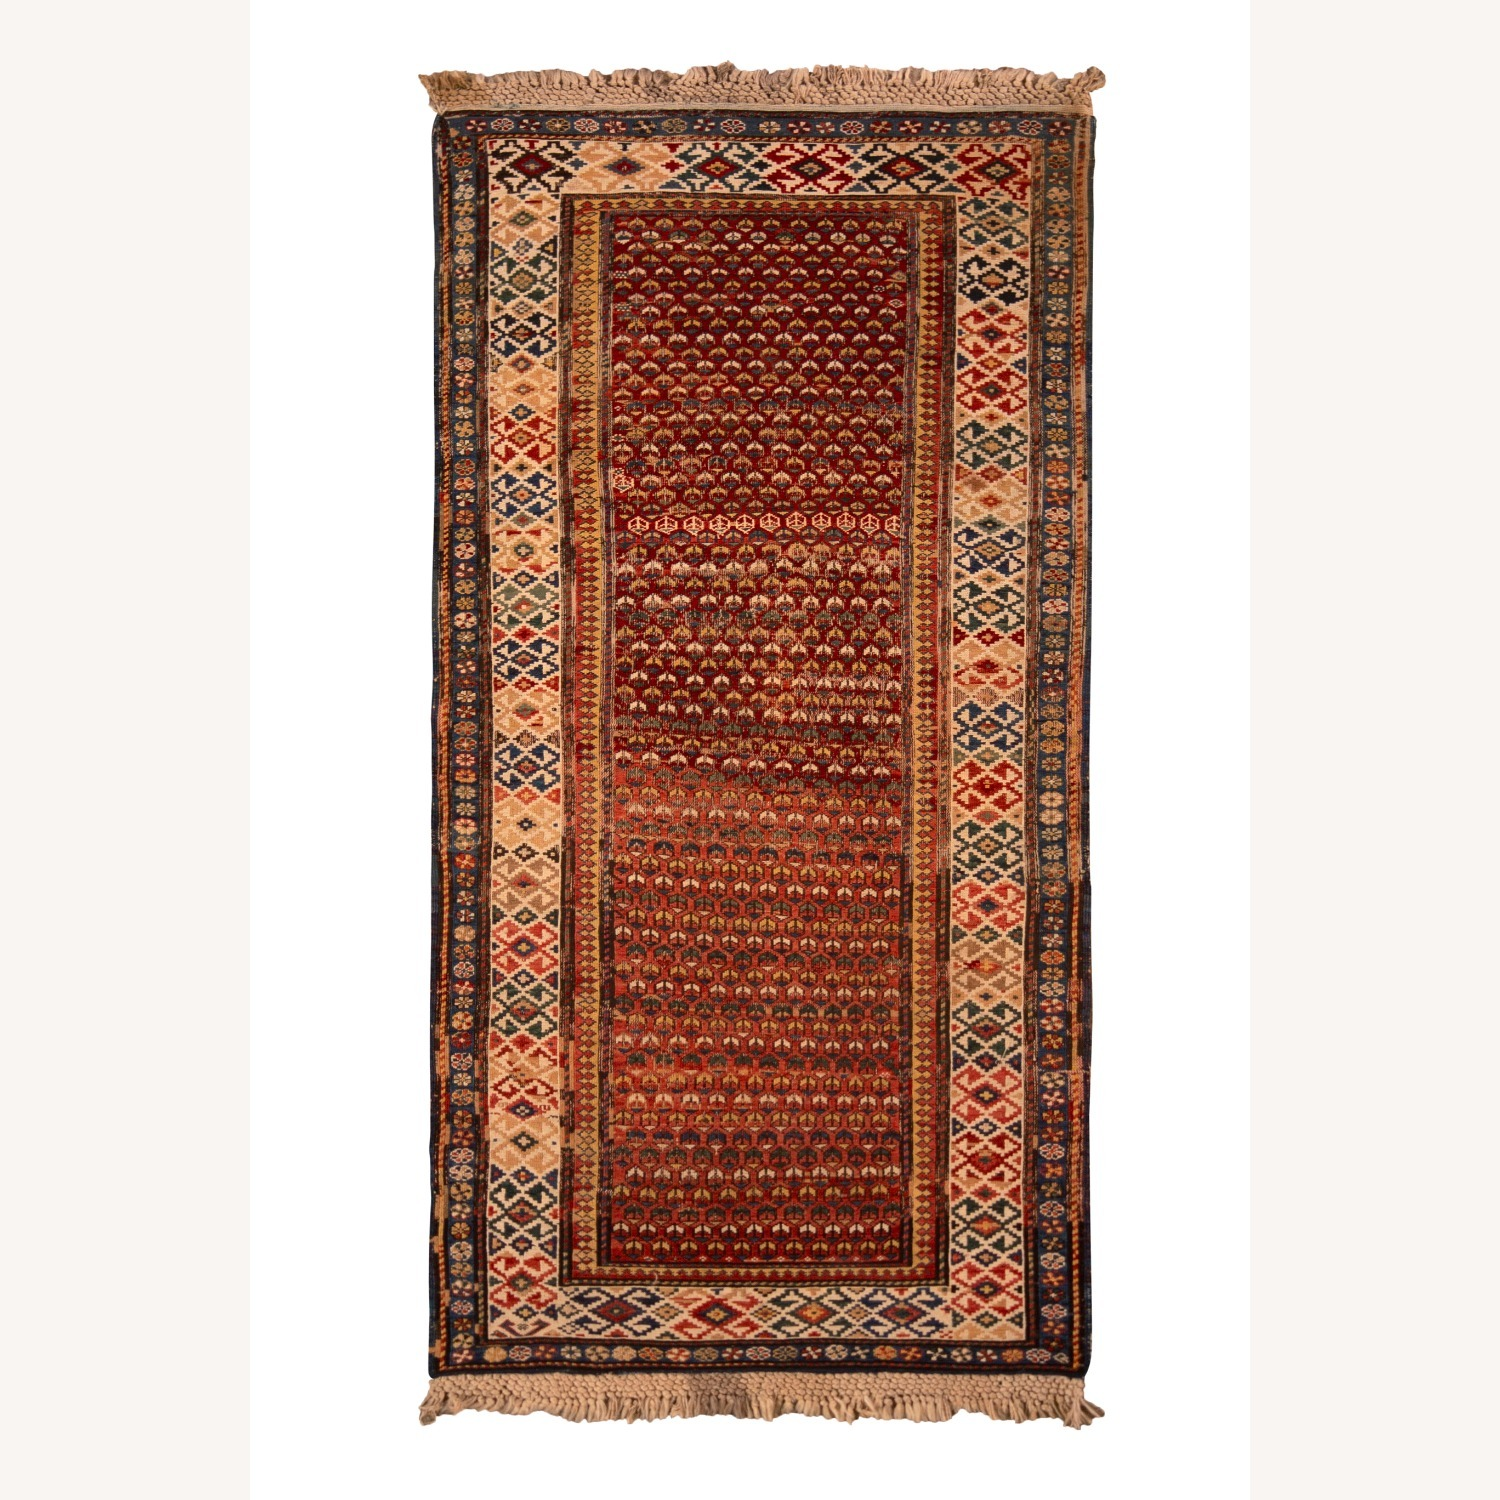 19th-Century Antique Soumak Rug - image-1